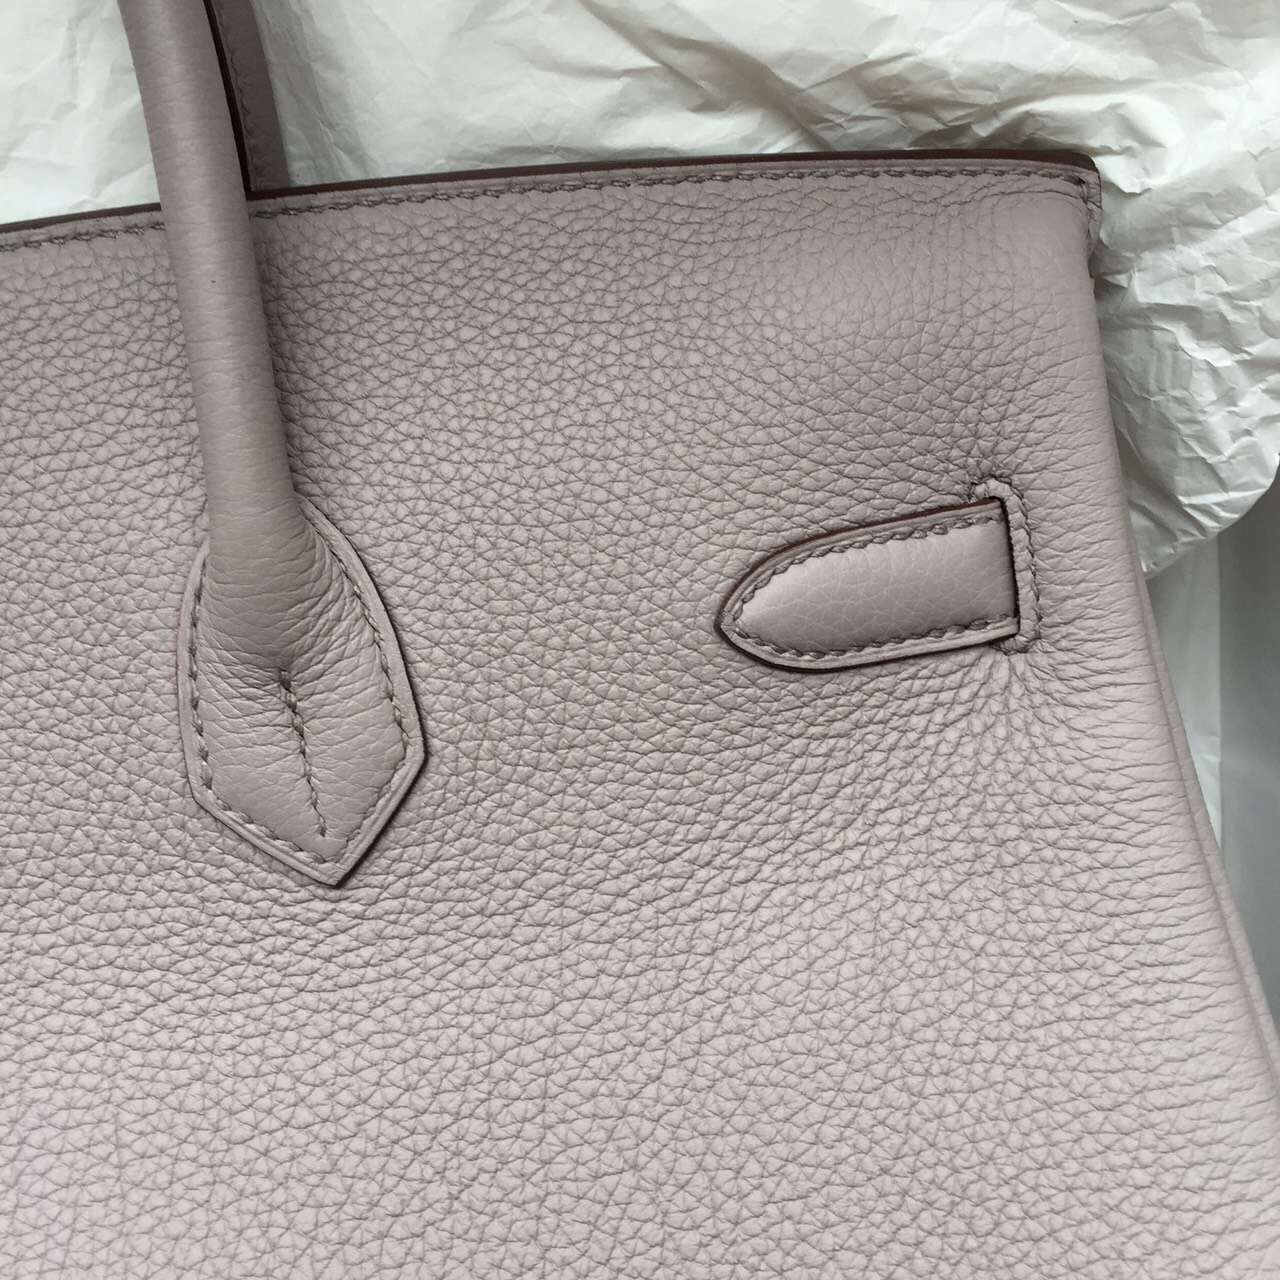 Hand Stitching Hermes Birkin Bag Light Coffee Top Togo Calfskin Leather Women's Tote Bag 35CM